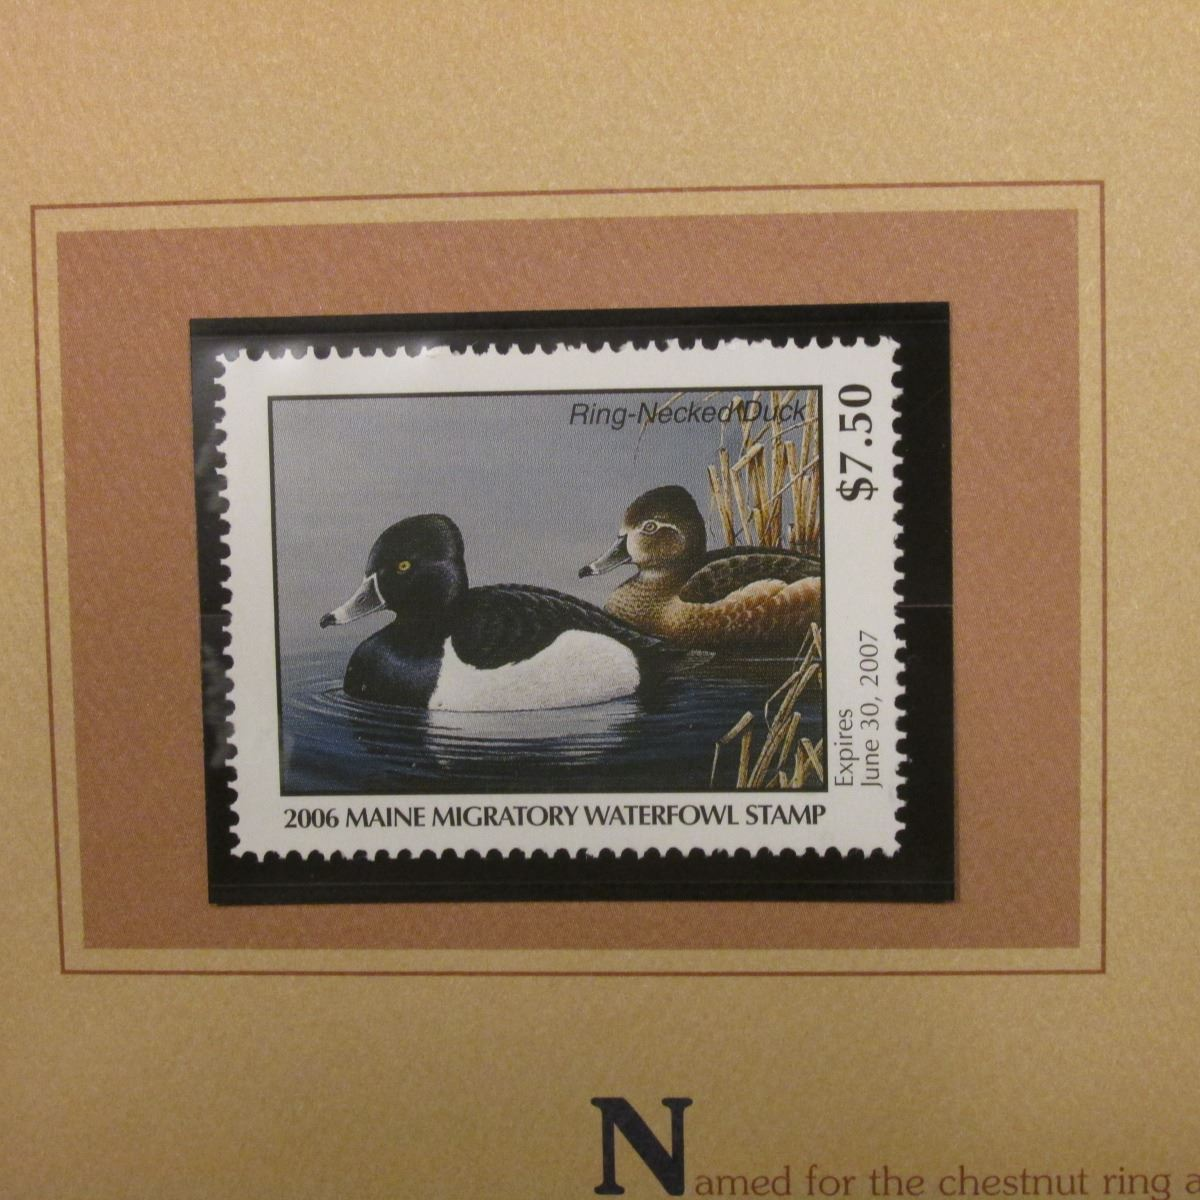 2006 Maine Migratory Waterfowl Conservation $7 50 Stamp depicting  Ring-necked Ducks, Pristine Mint c